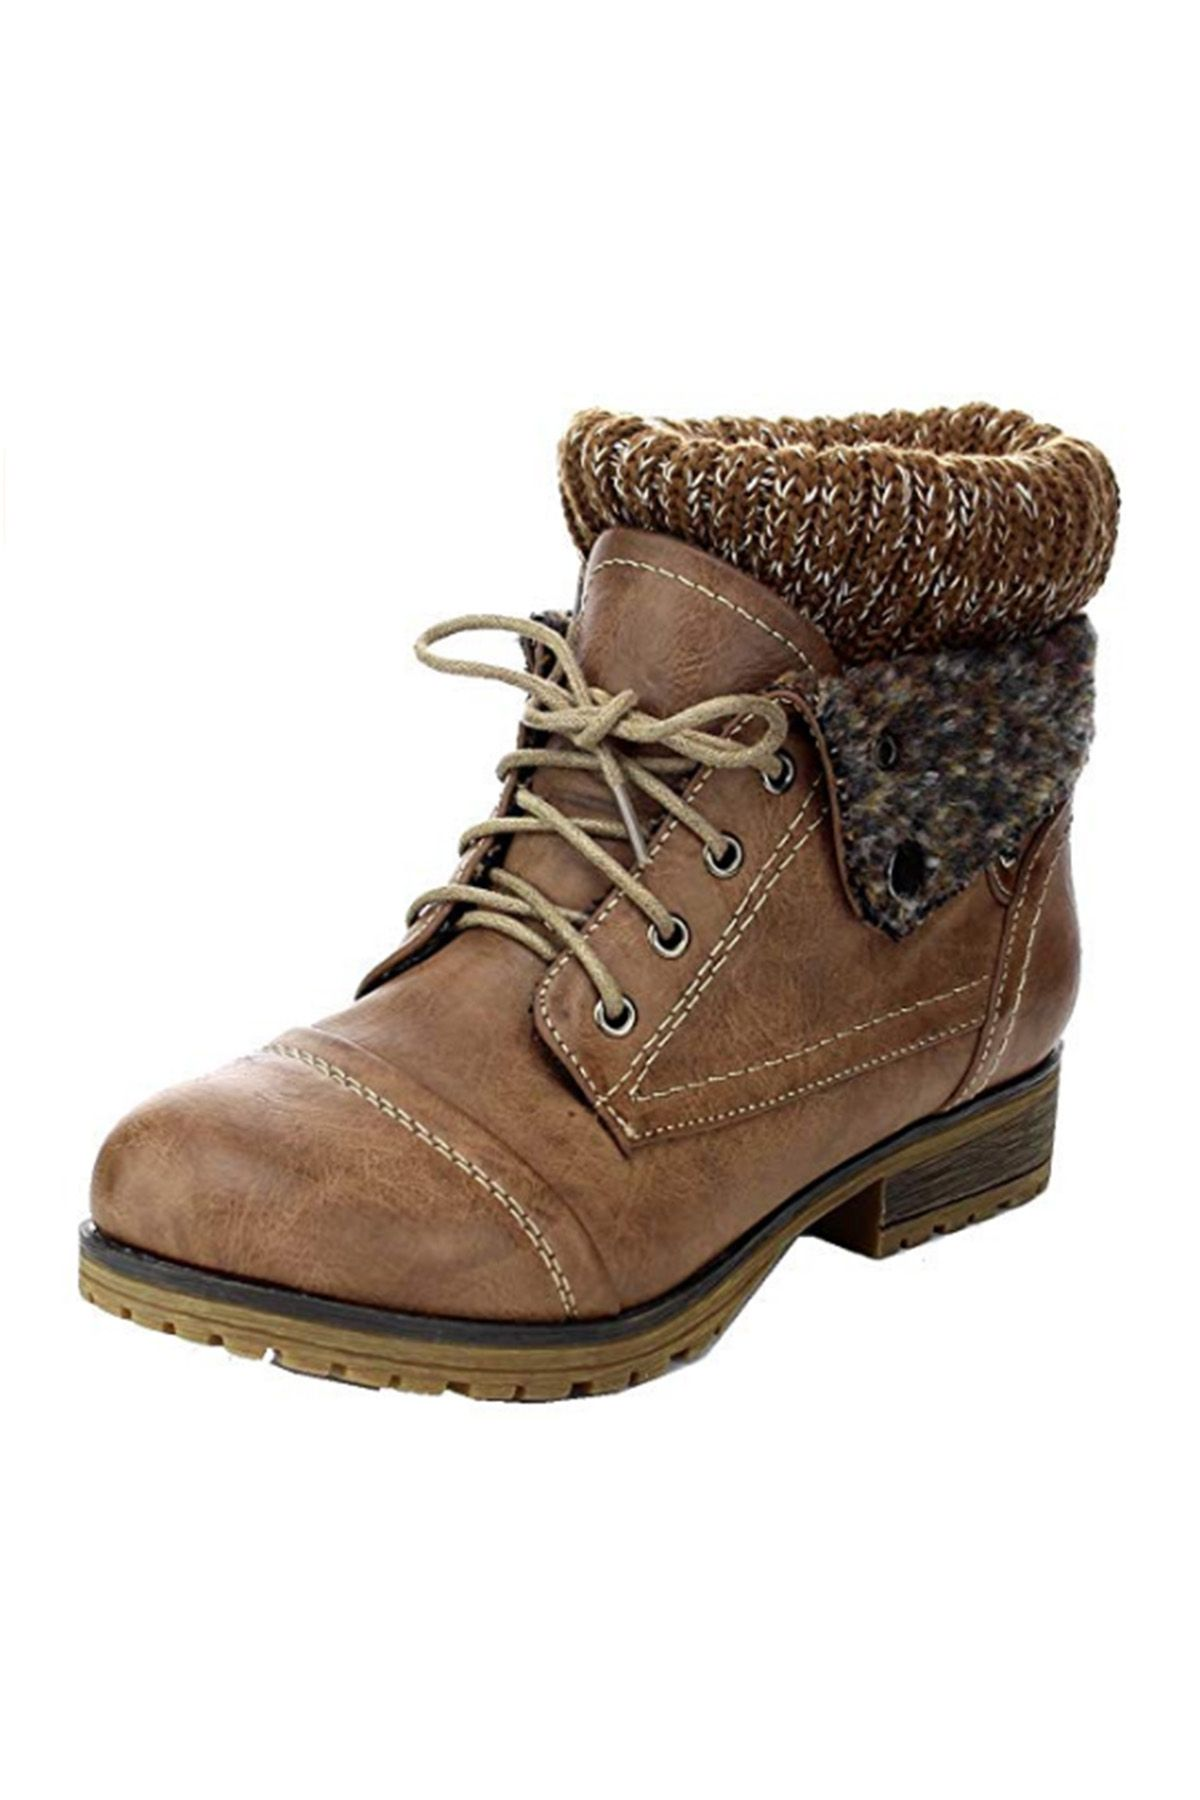 Best Fall and Winter Boots for Women